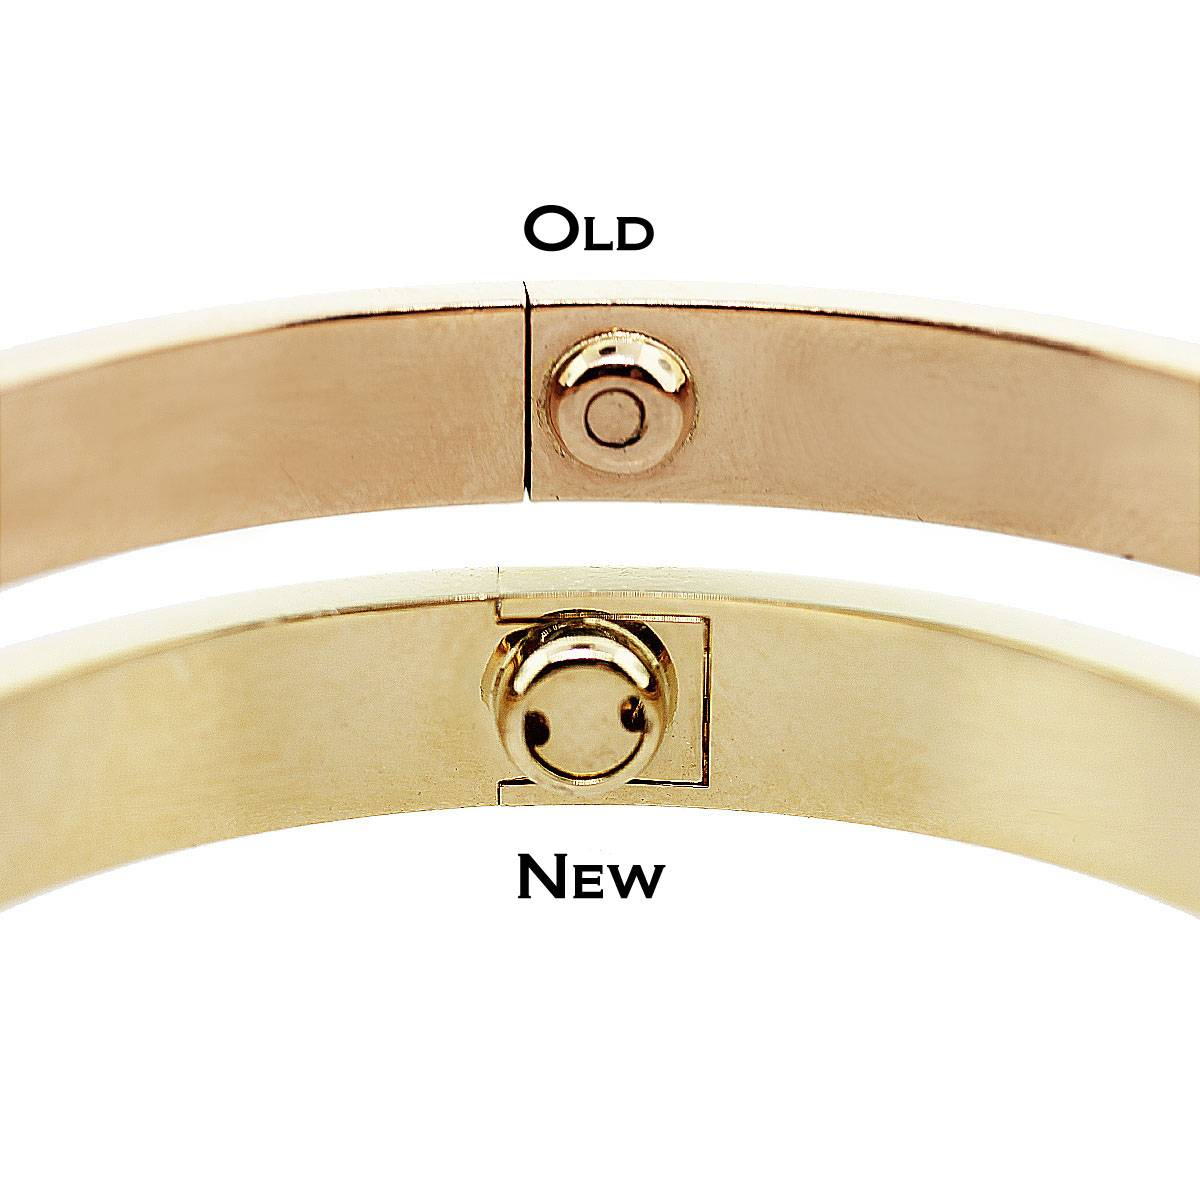 New Style Love Bracelet Old Difference Between And Used Cartier